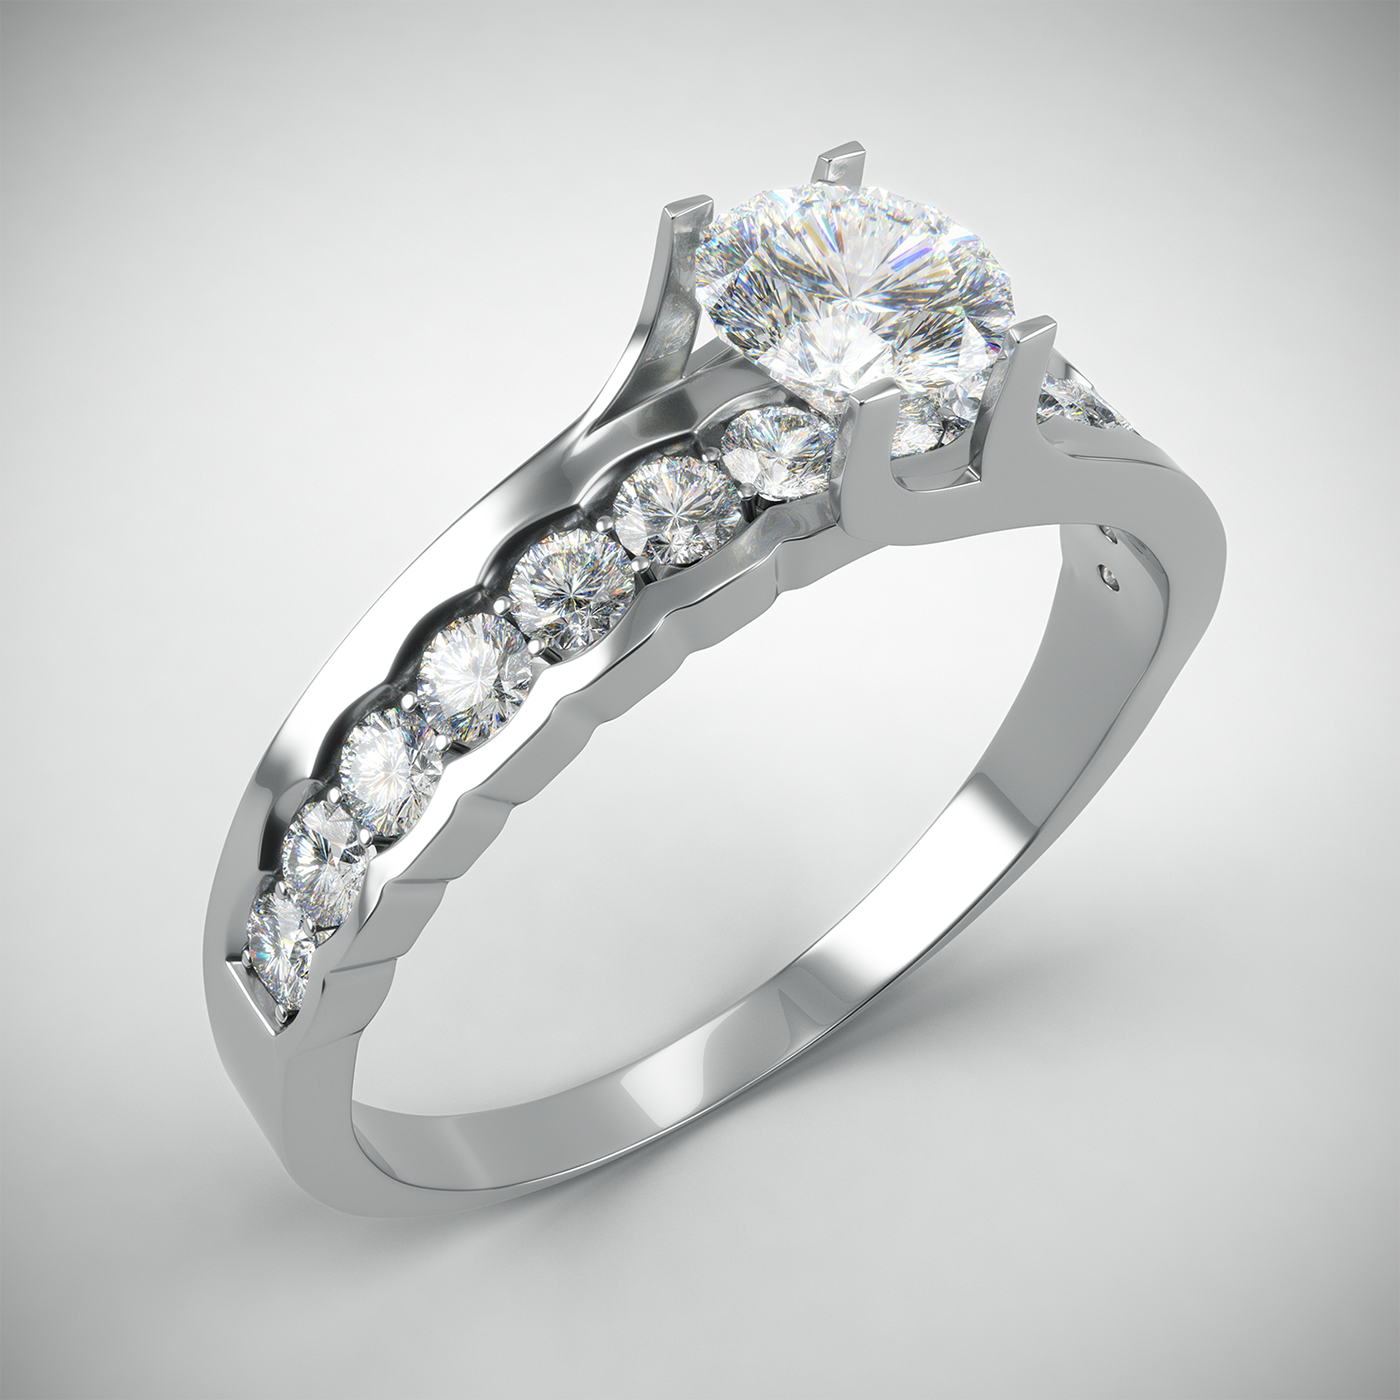 ring gold White Gold jewelry visualization 3D rendering Gems diamonds